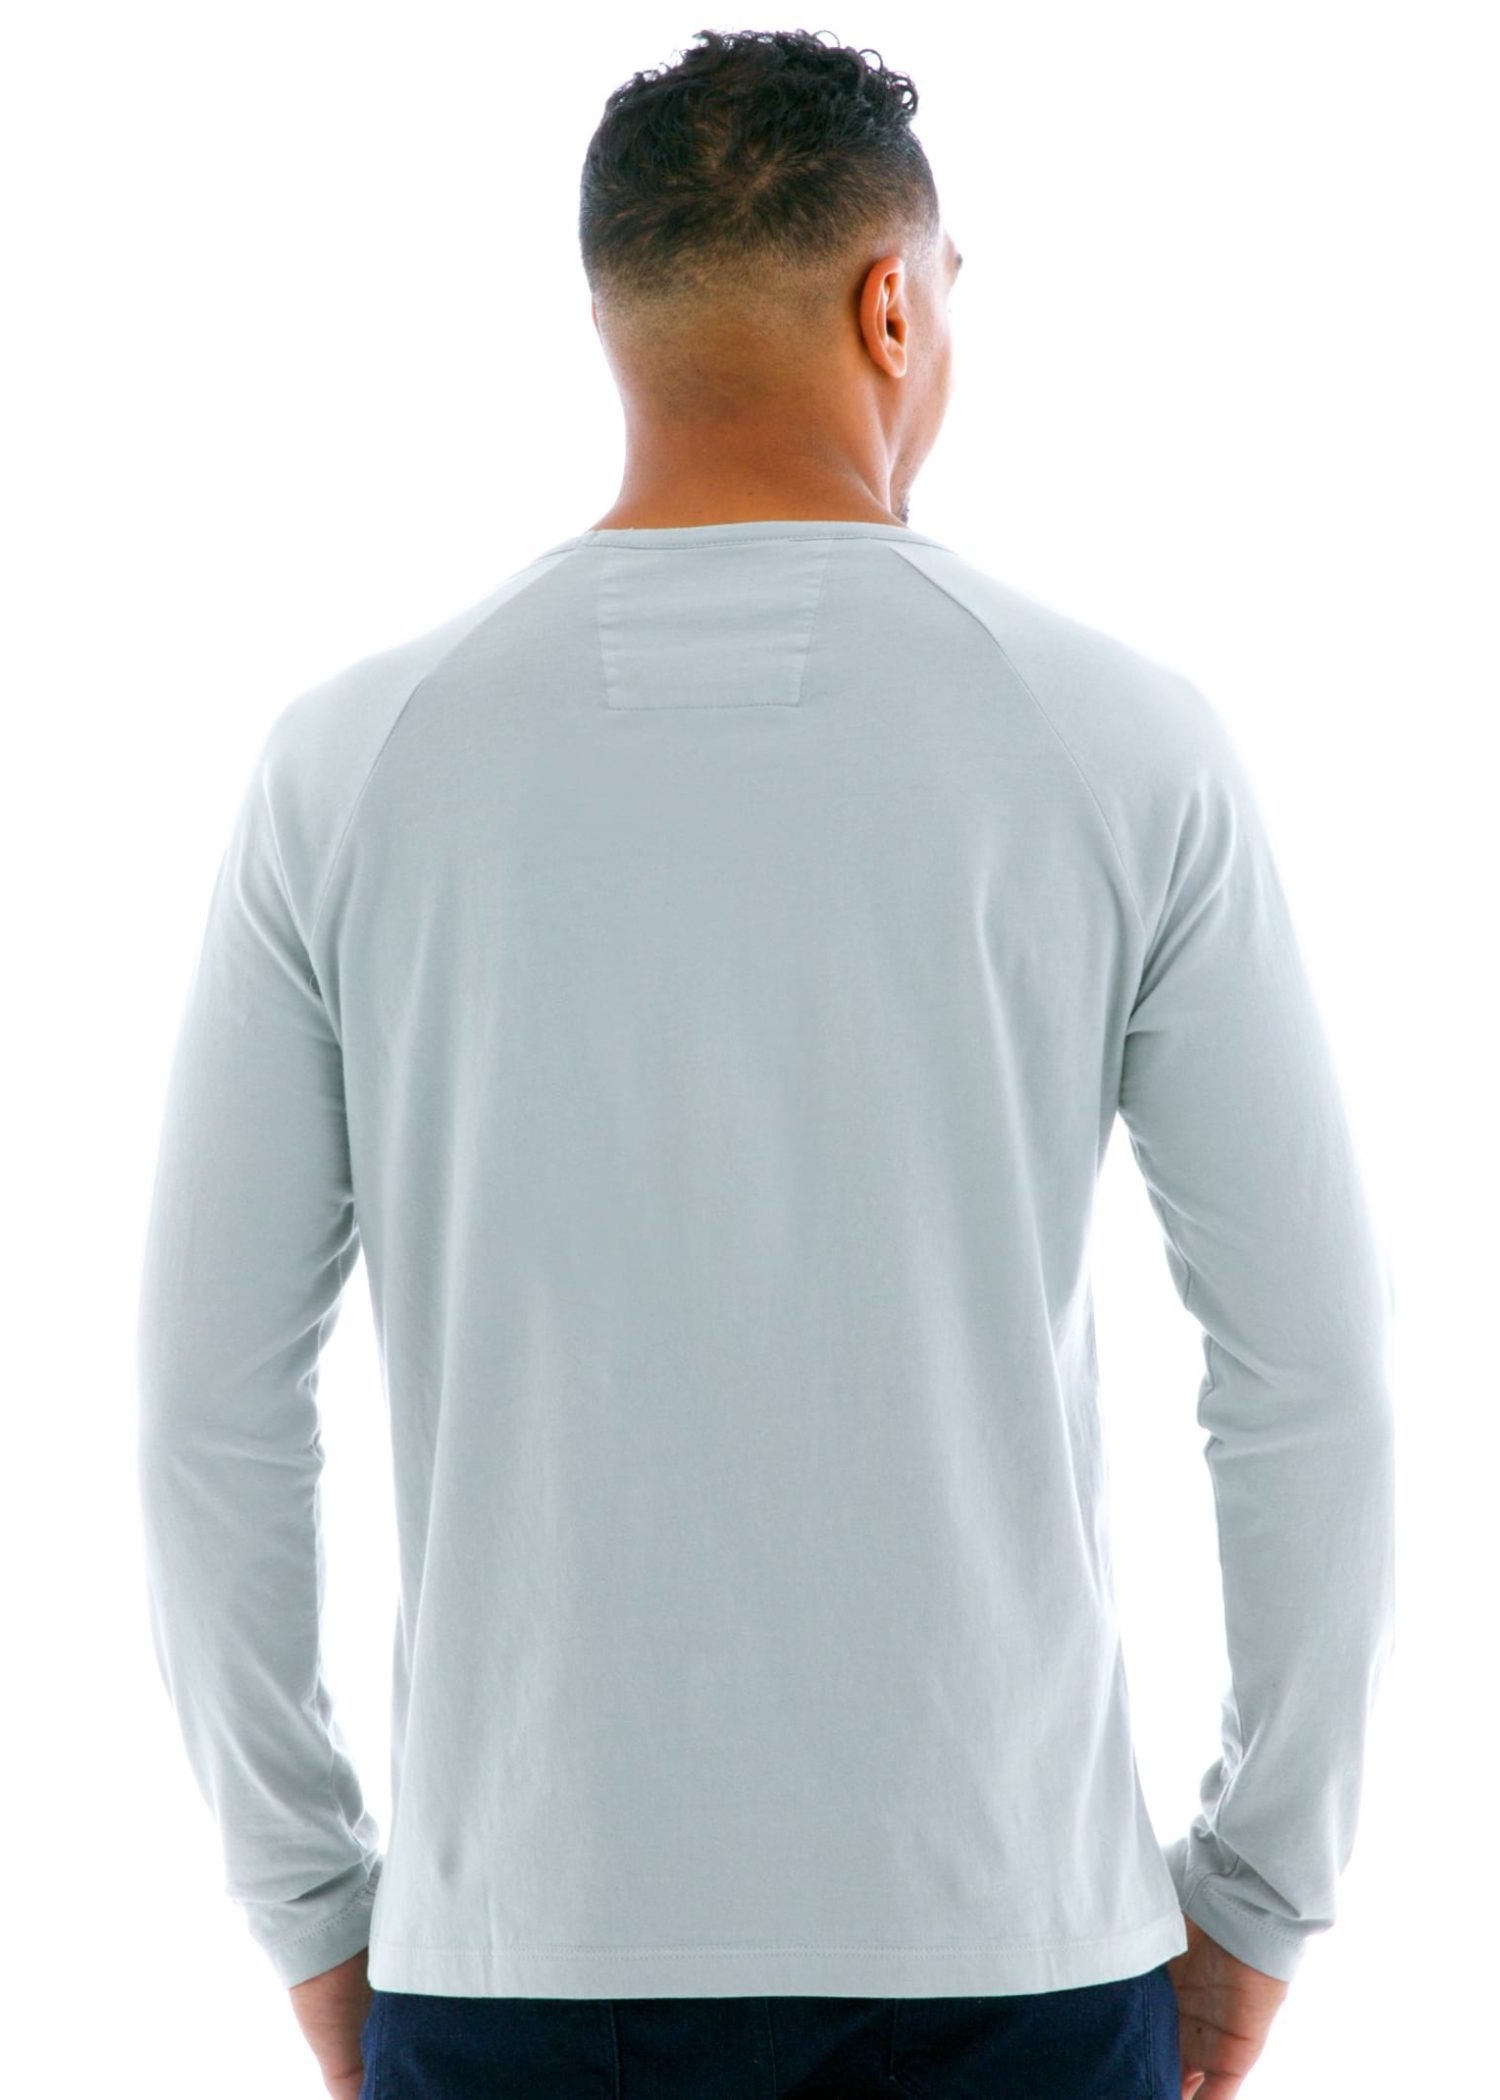 Long Sleeve Raglan Crew T-Shirt Back View